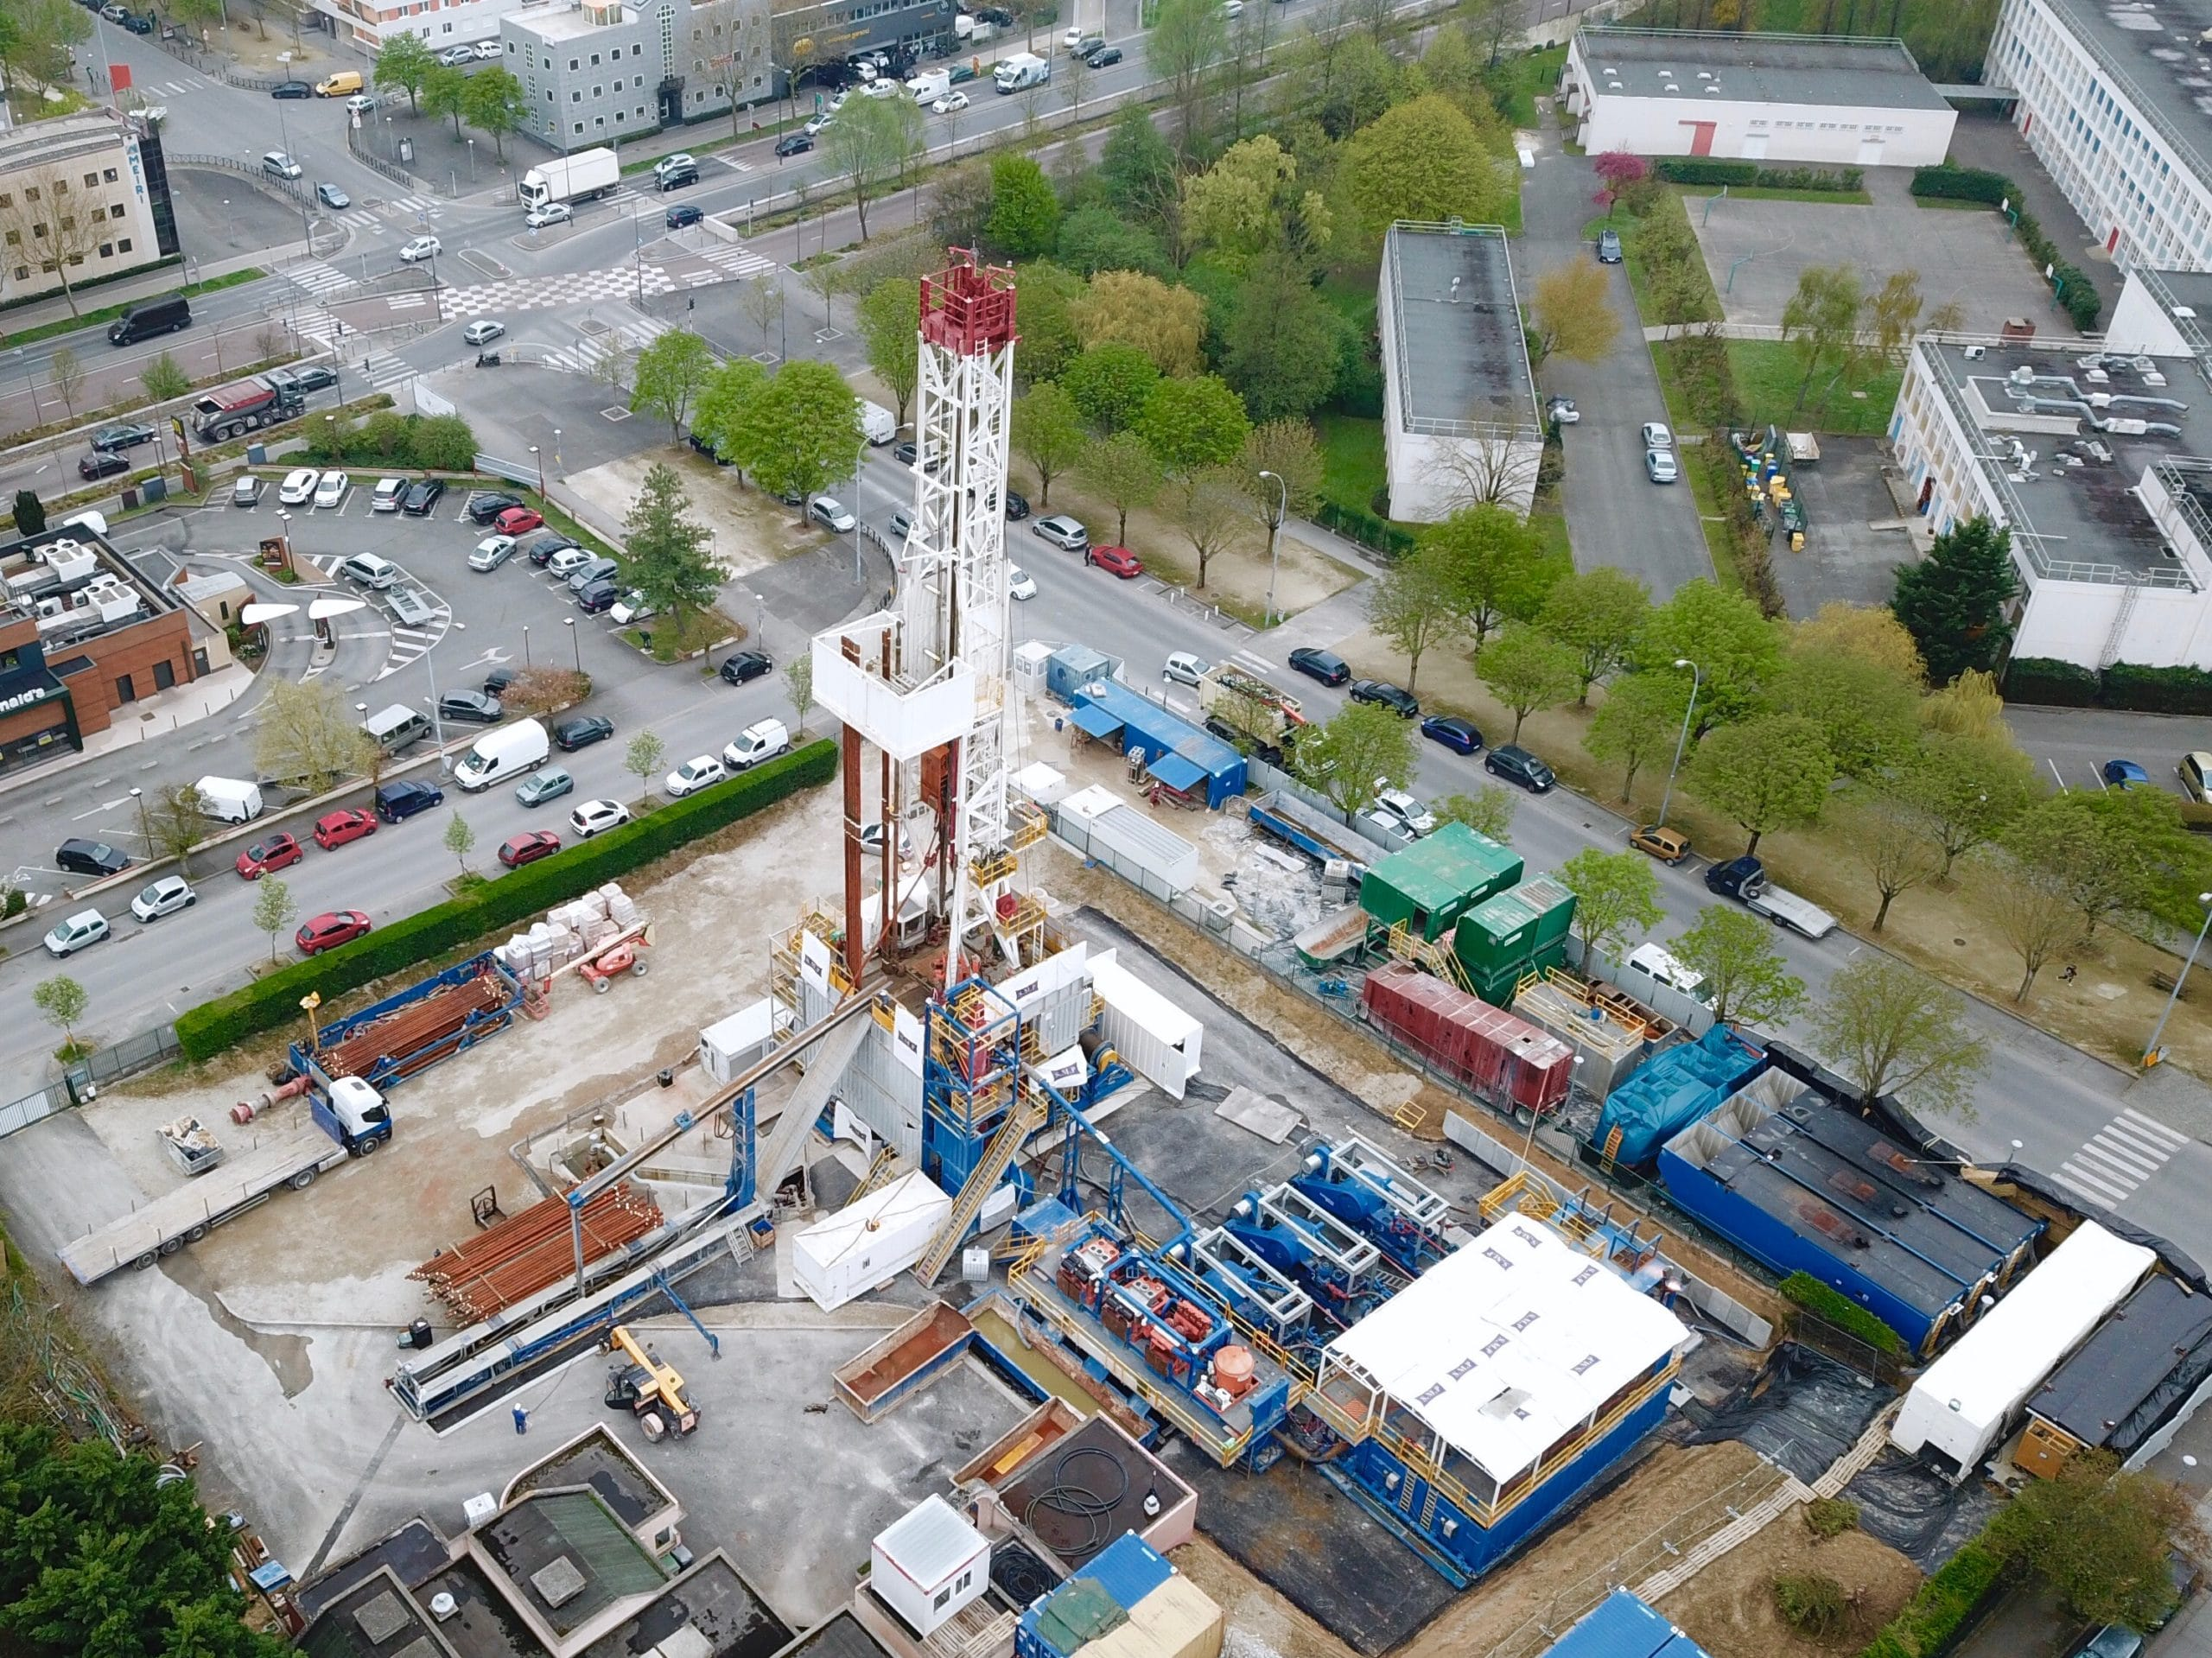 Deep, shallow, hot, cold: The future of geothermal energy